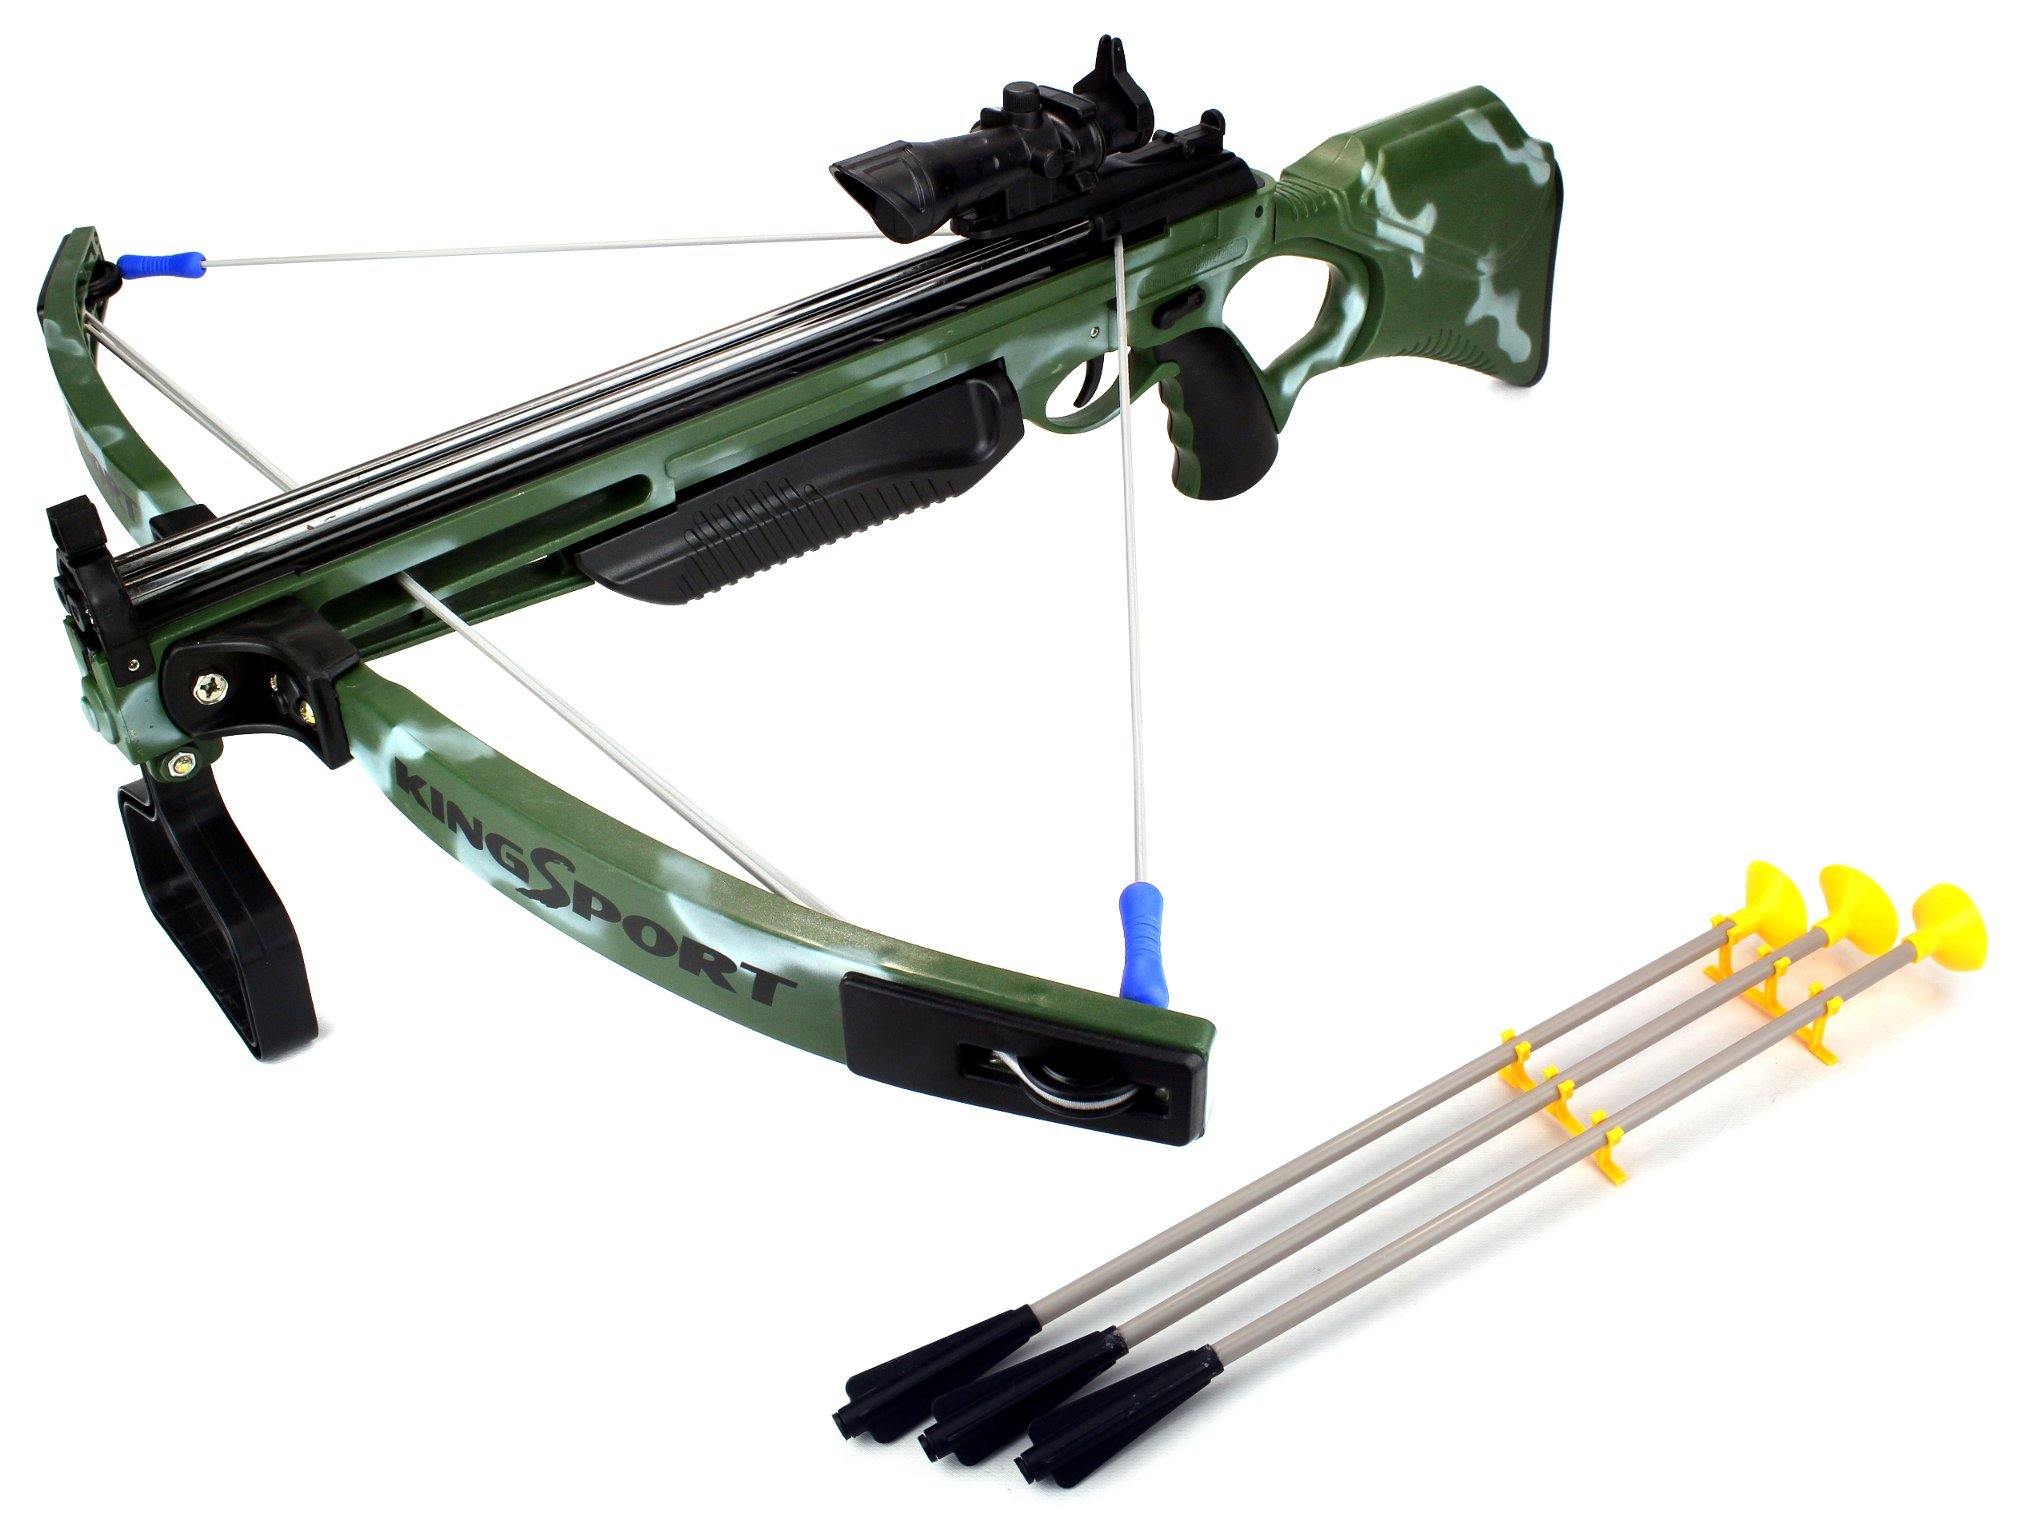 Toy Crossbow Set Deluxe Action Military Toy Crossbow Suction Dart Playset w/ Foot Stirrup, 3 Suction Darts, Holder, Mock Scope